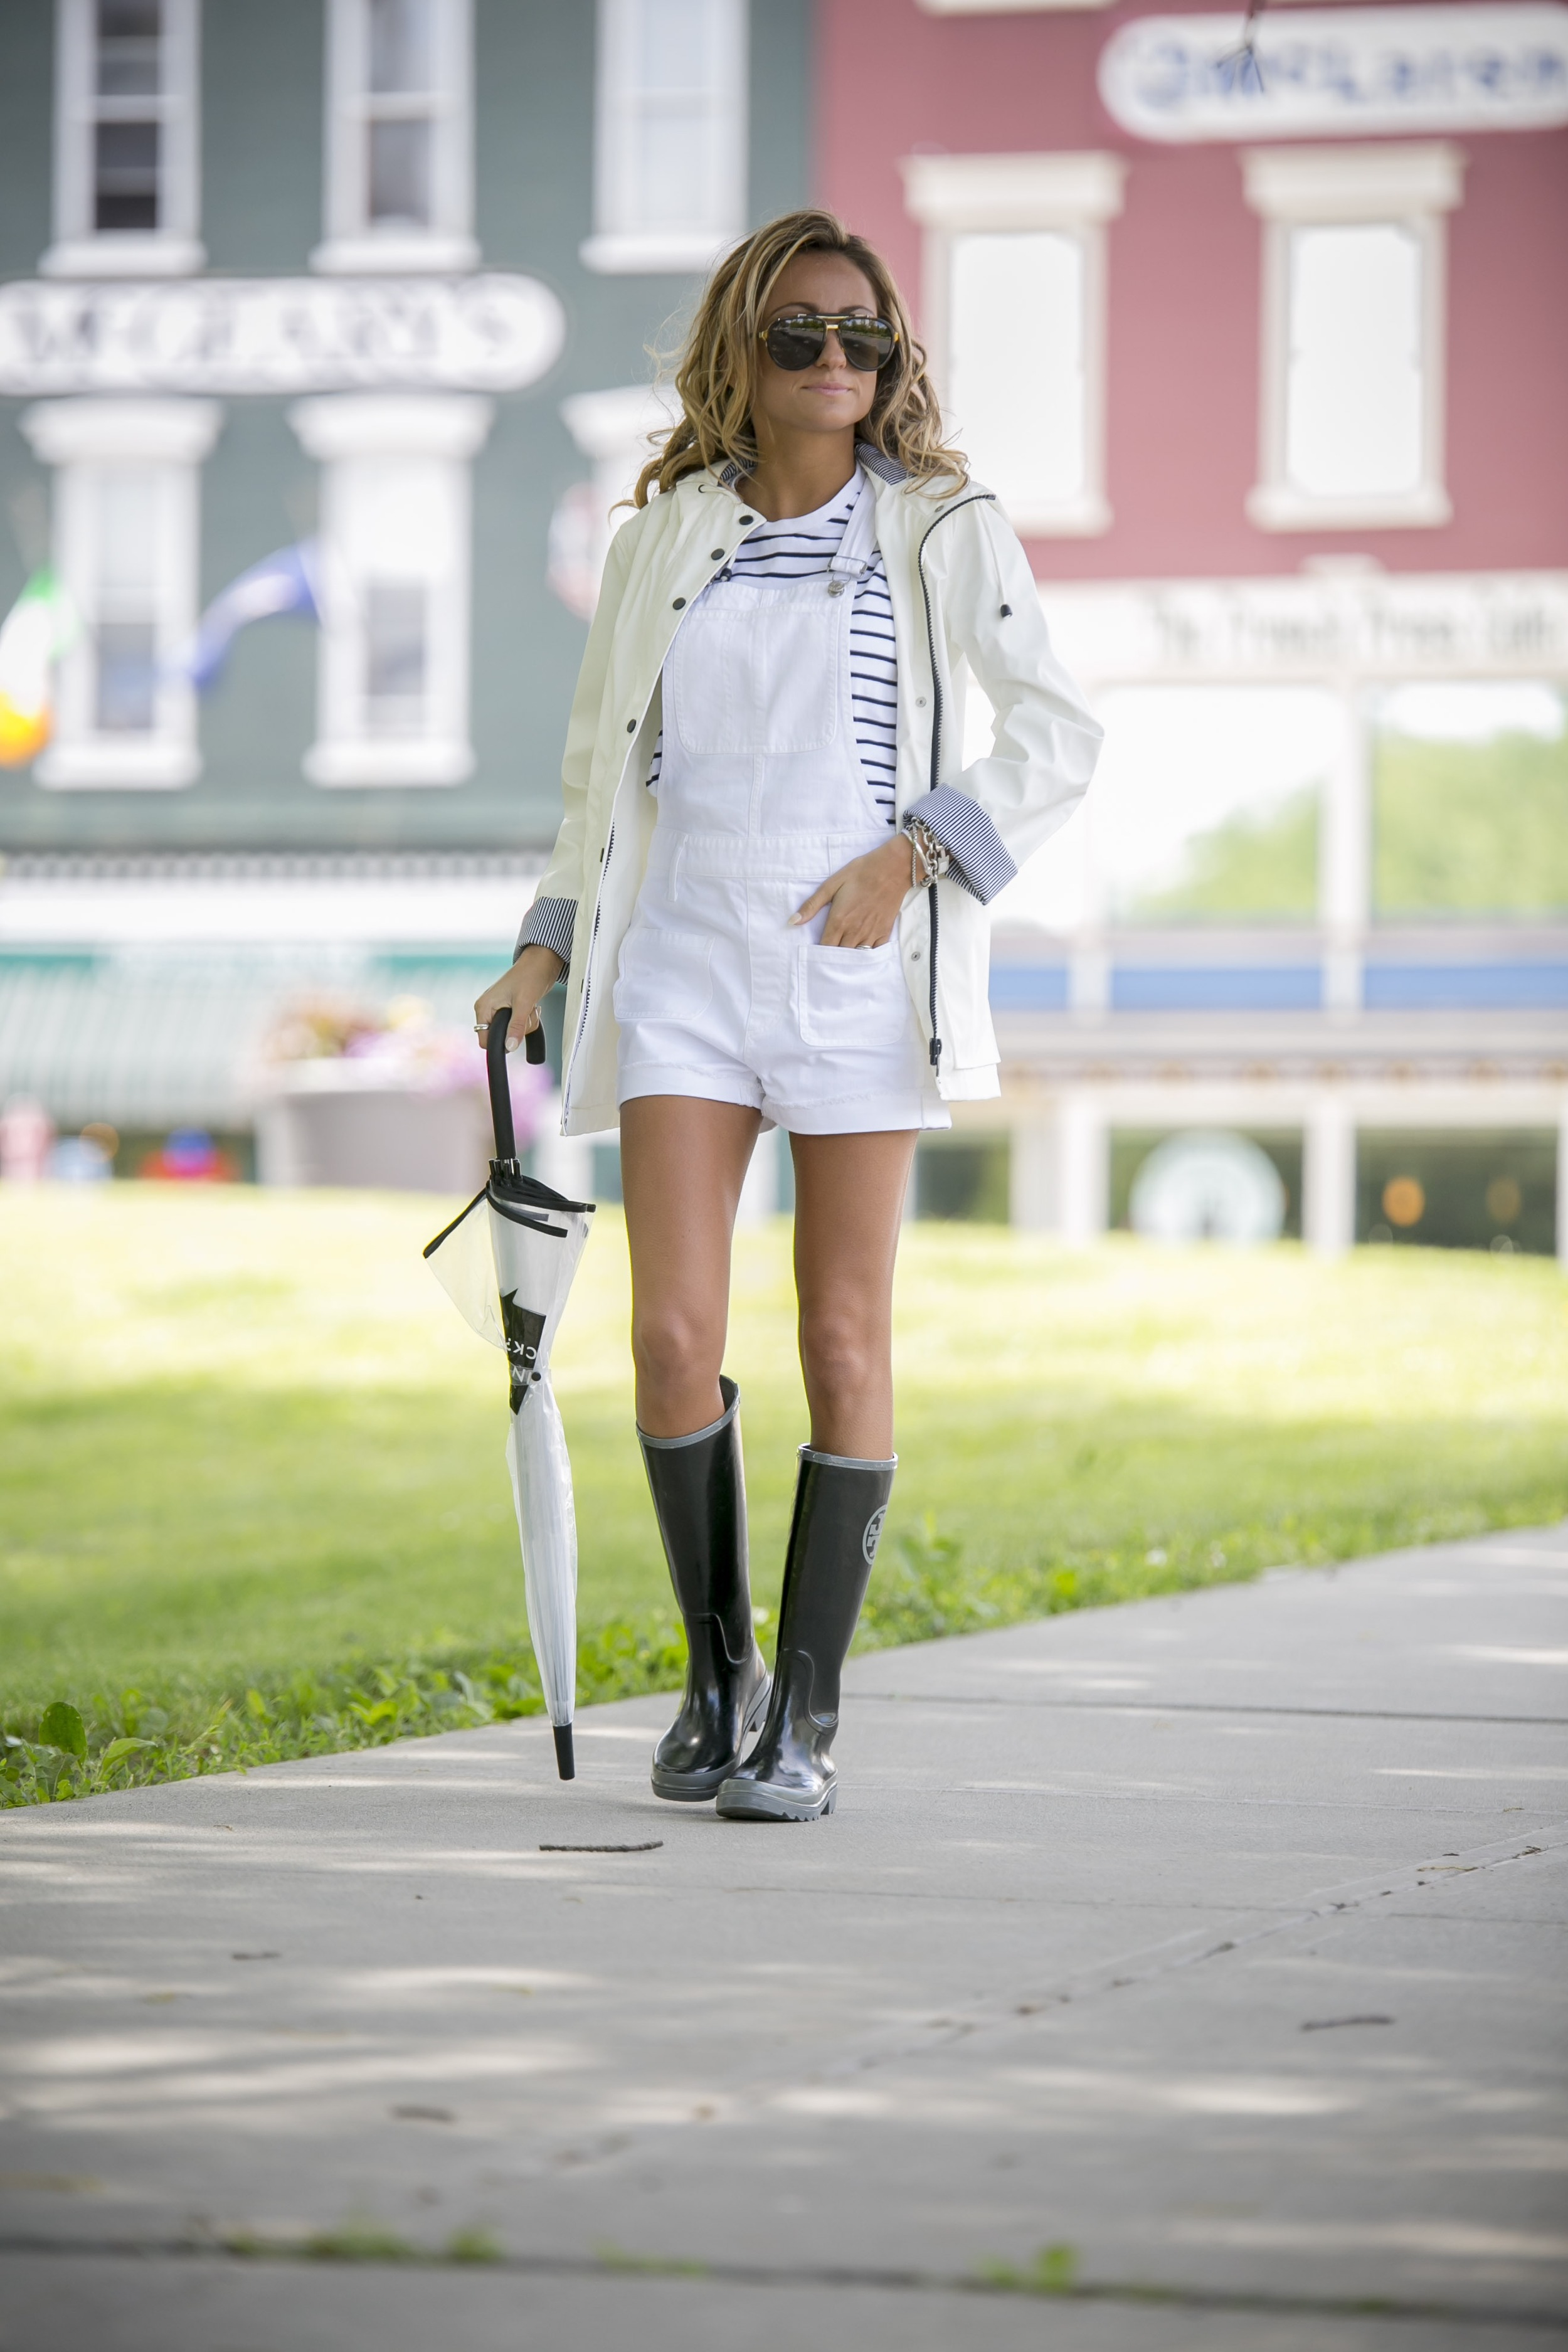 Overalls: Madewell |Tee:Rag&Bone( similar )|Coat: Topshop |Boots:Tory Burch(older, similar here )|Umbrella: Kate Spade  (also love this  one )    Dino Petrocelli Photography